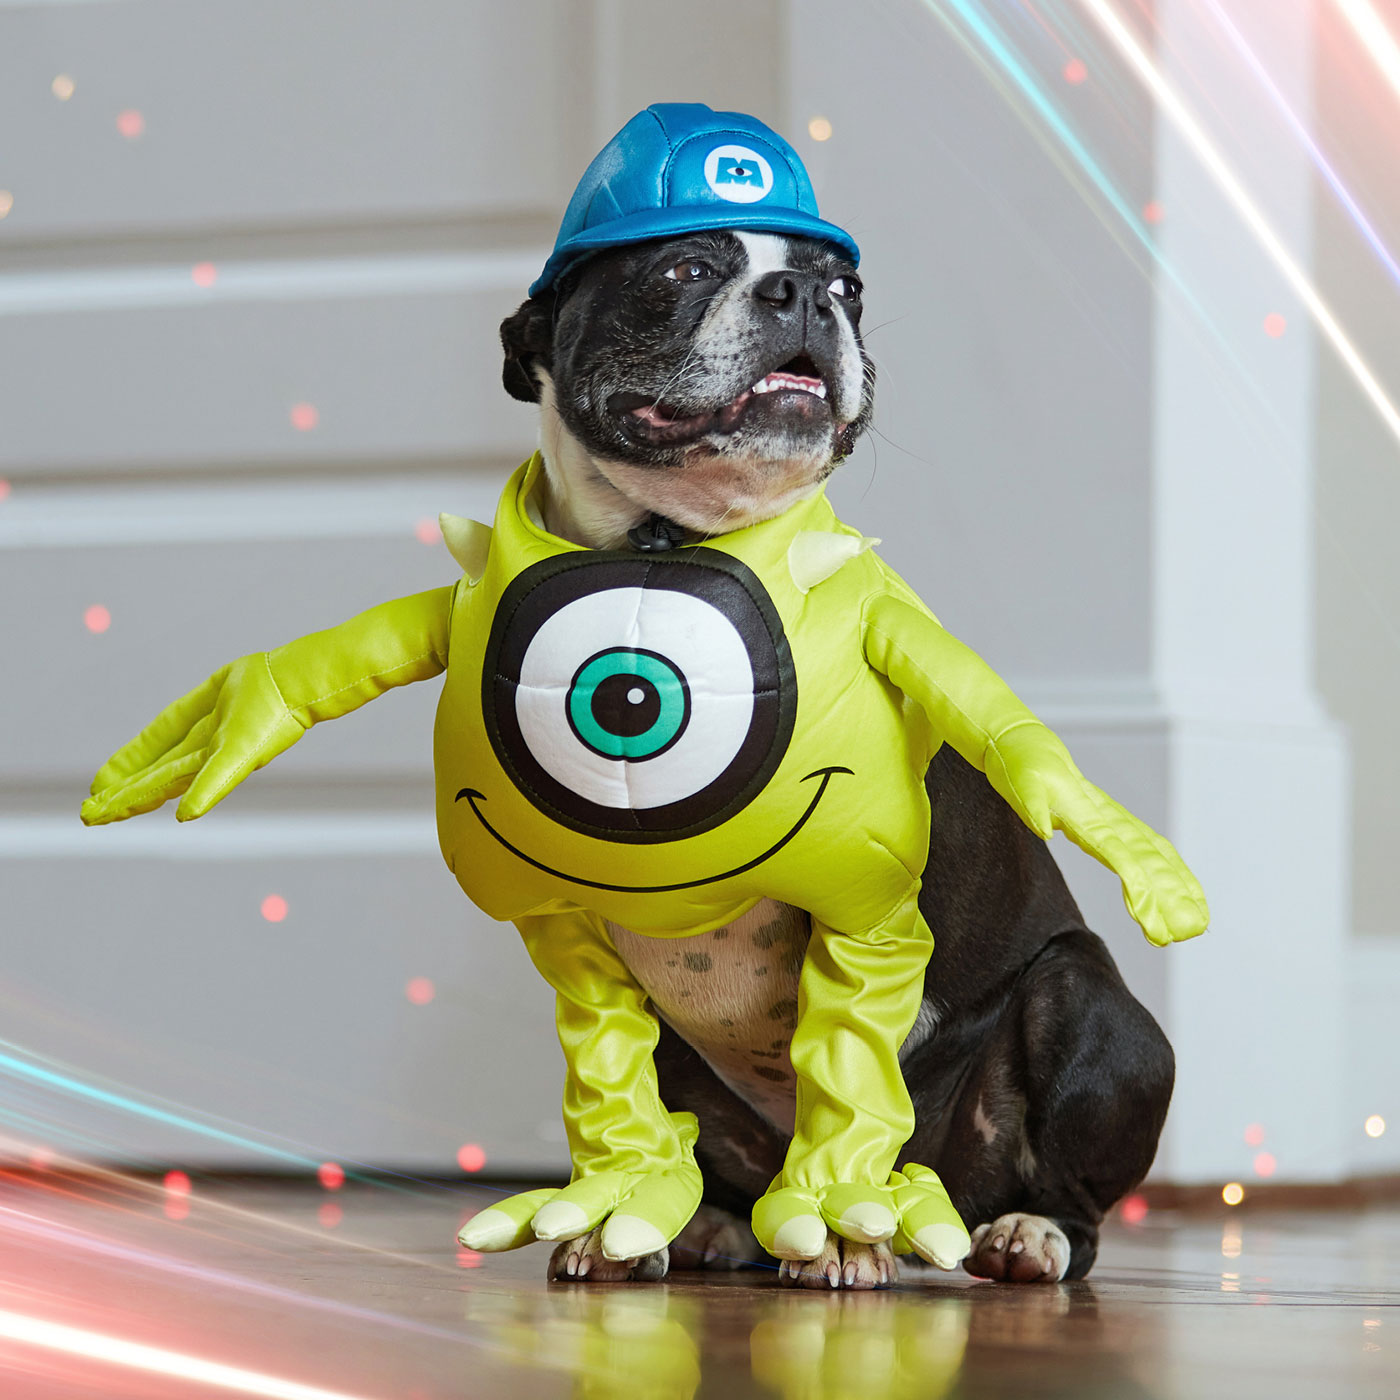 disney dog costumes - mike Wazowski  from Monsters Inc